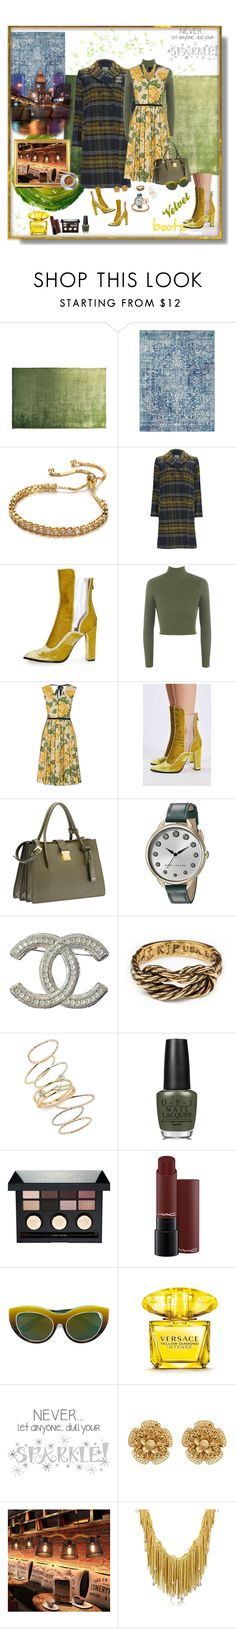 """""""Meeting friends for coffee...pattern mixing and velvet boots"""" by deborah-518 ❤ liked on Polyvore featuring Designers Guild, Great Plains, Topshop, WearAll, Marc Jacobs, Miu Miu, Chanel, BP., OPI and Bobbi Brown Cosmetics"""